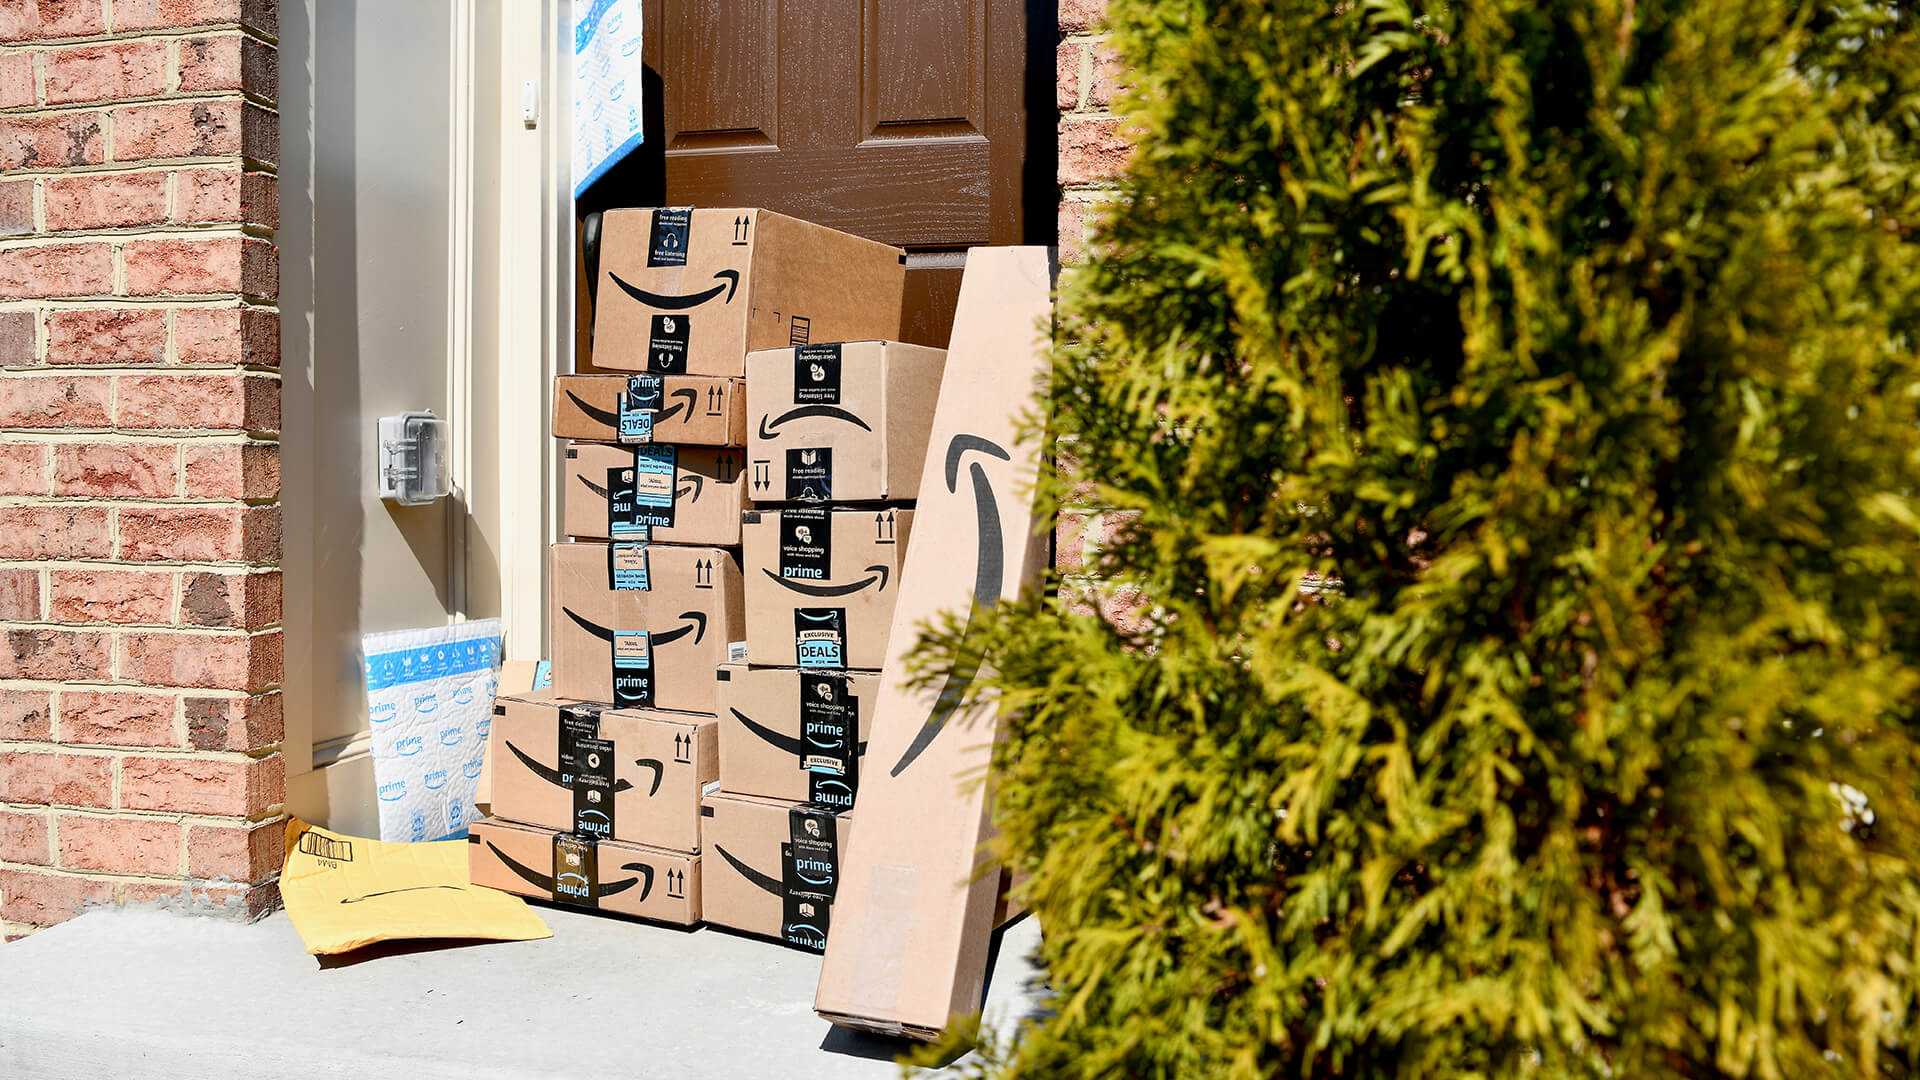 WASHINGTON DC, USA - MARCH 15, 2018: A large Amazon Prime delivery consisting of several packages delivered to the front door of a home.